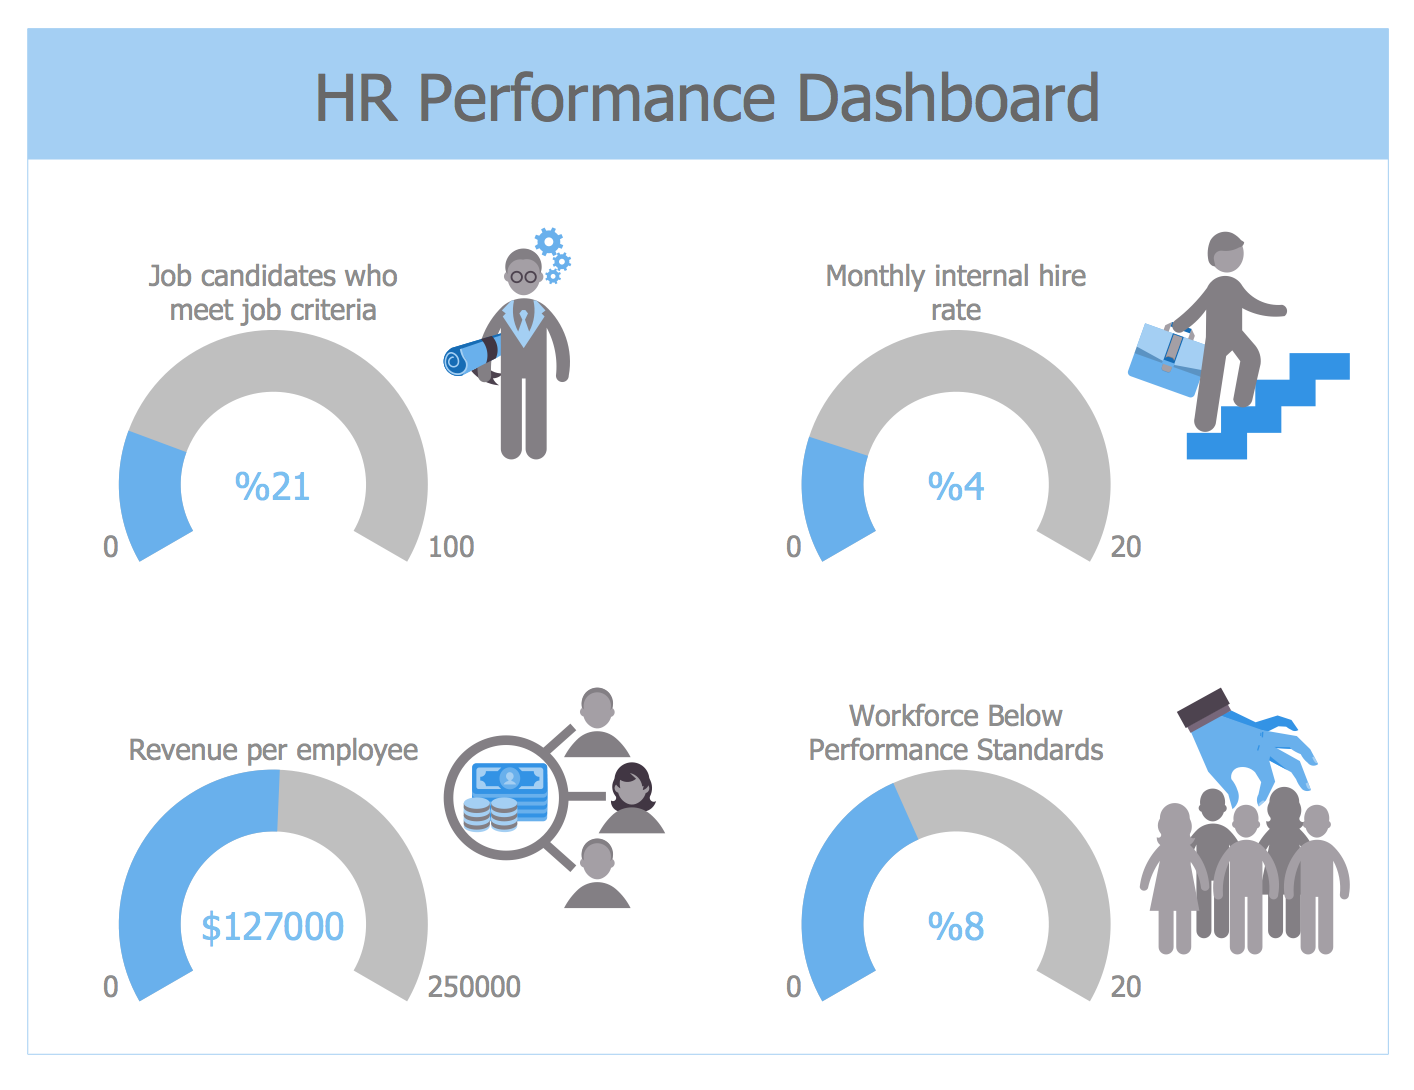 HR Performance Dashboard